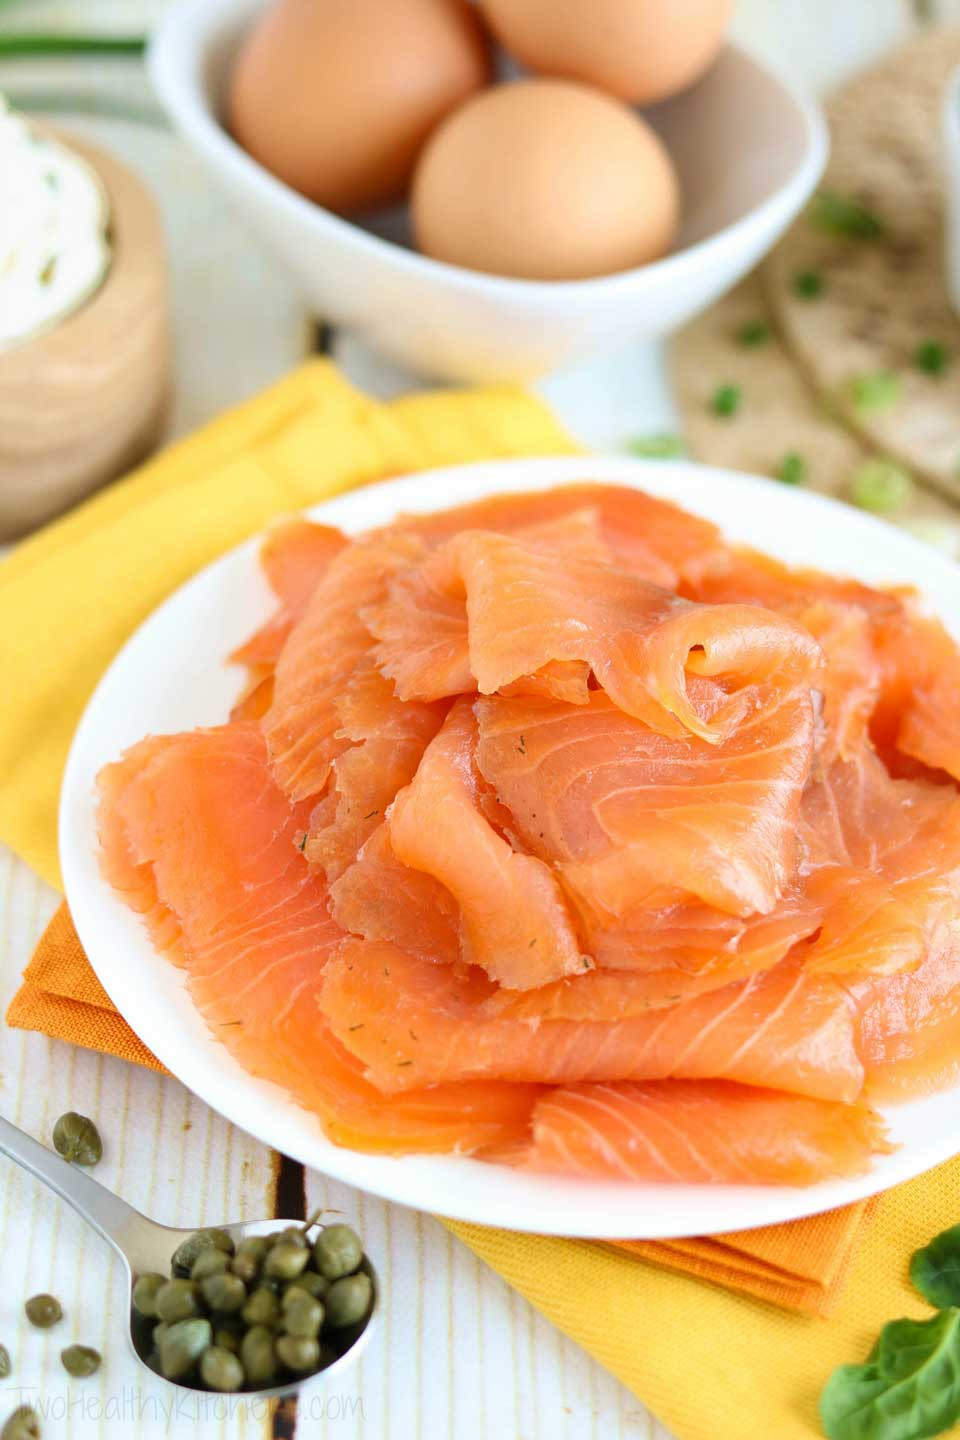 Salmon For Breakfast Healthy  Easy Smoked Salmon Breakfast Wrap Two Healthy Kitchens